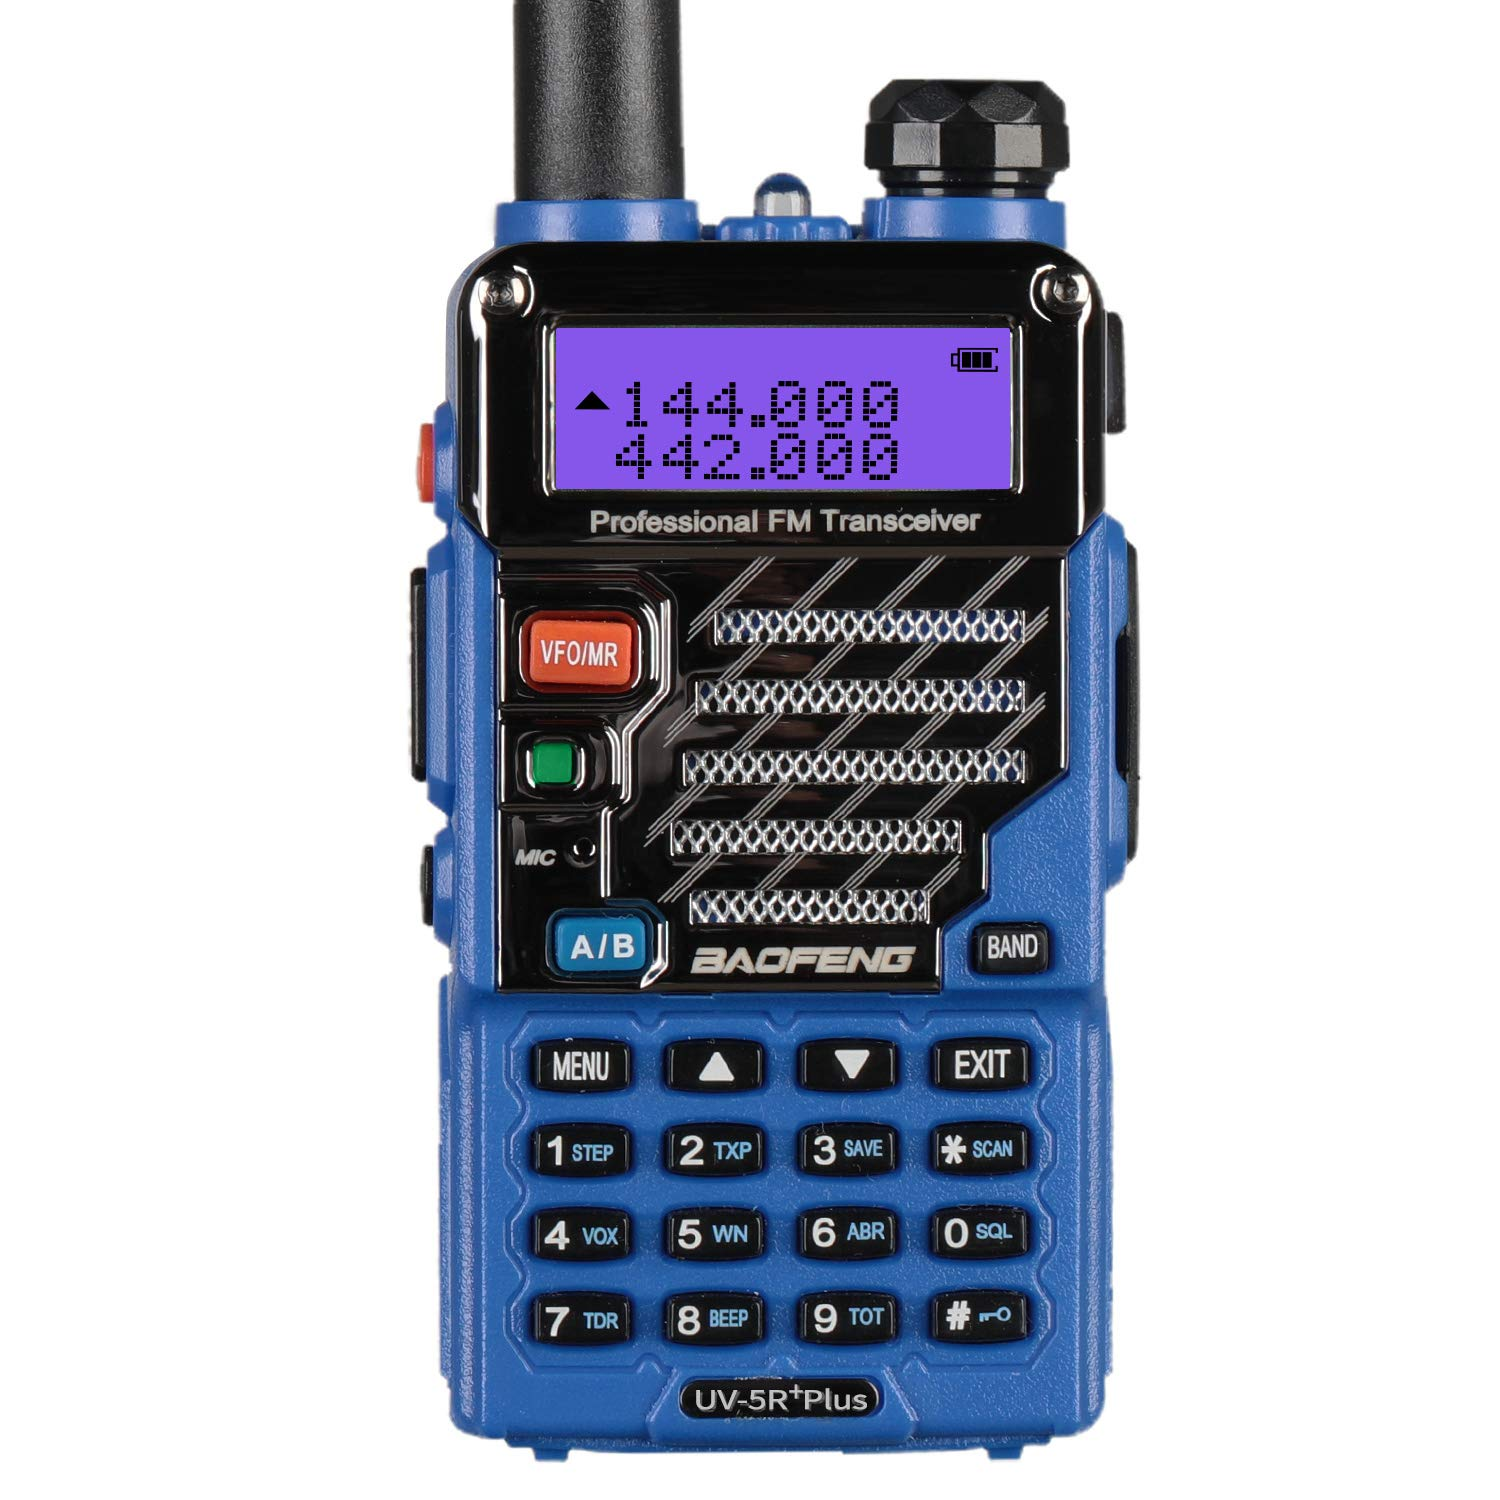 BaoFeng UV-5R Plus Qualette Two way Radio (Royal Blue) by BAOFENG